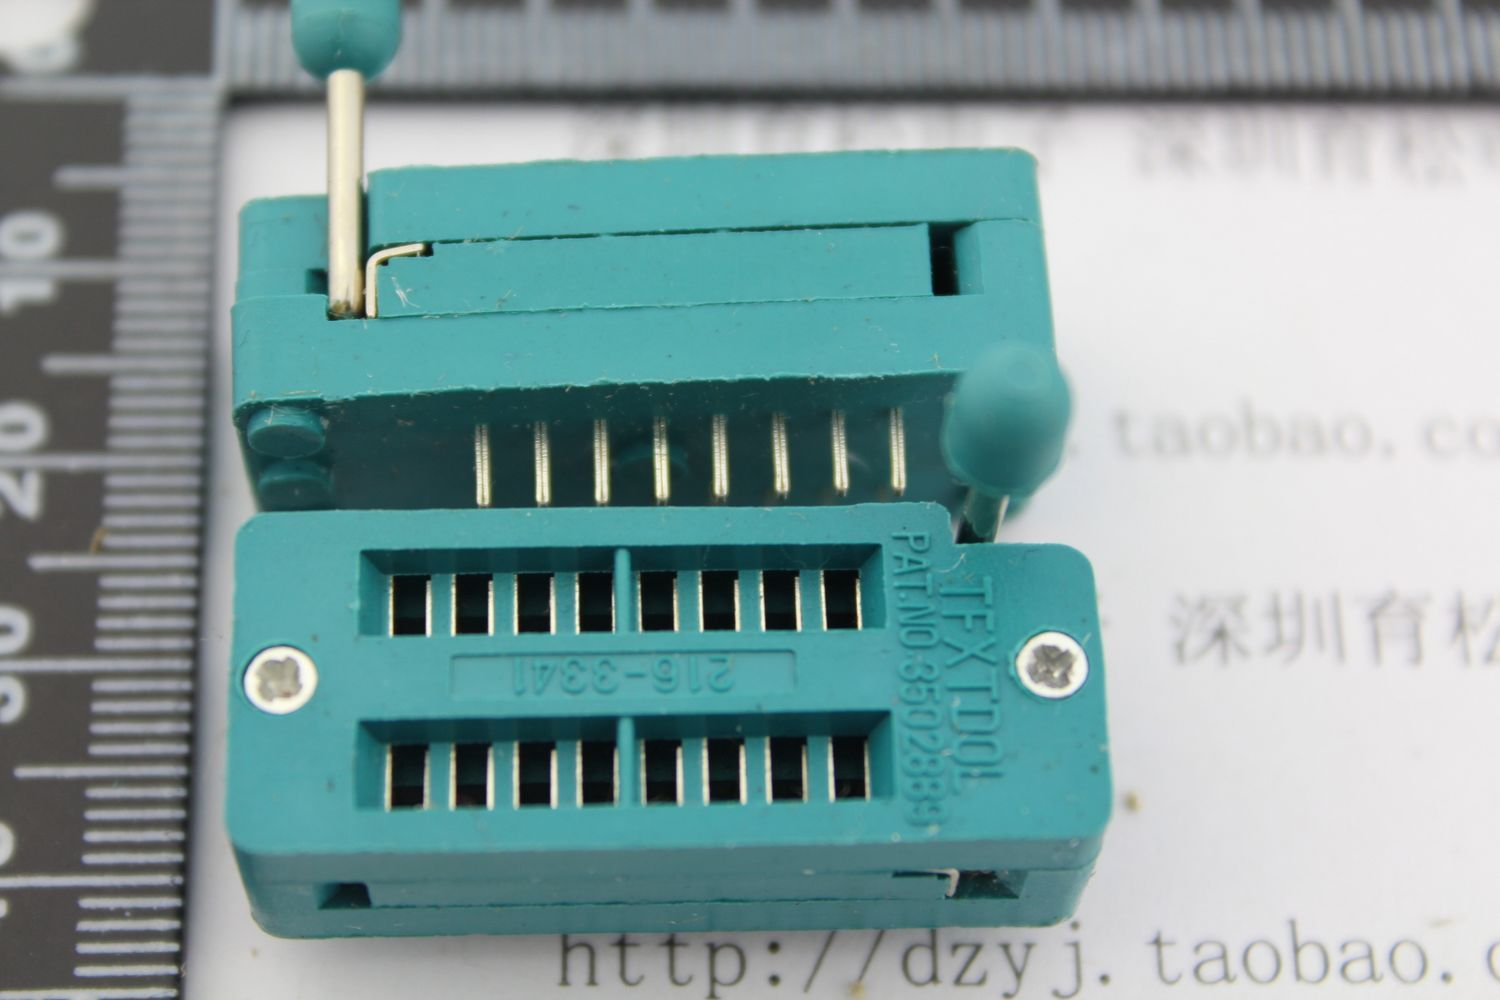 16 Pic P Lock Red Bridge Ic Testing Live Base Integrated Circuit Basic Information For Beginners In Chip Socket